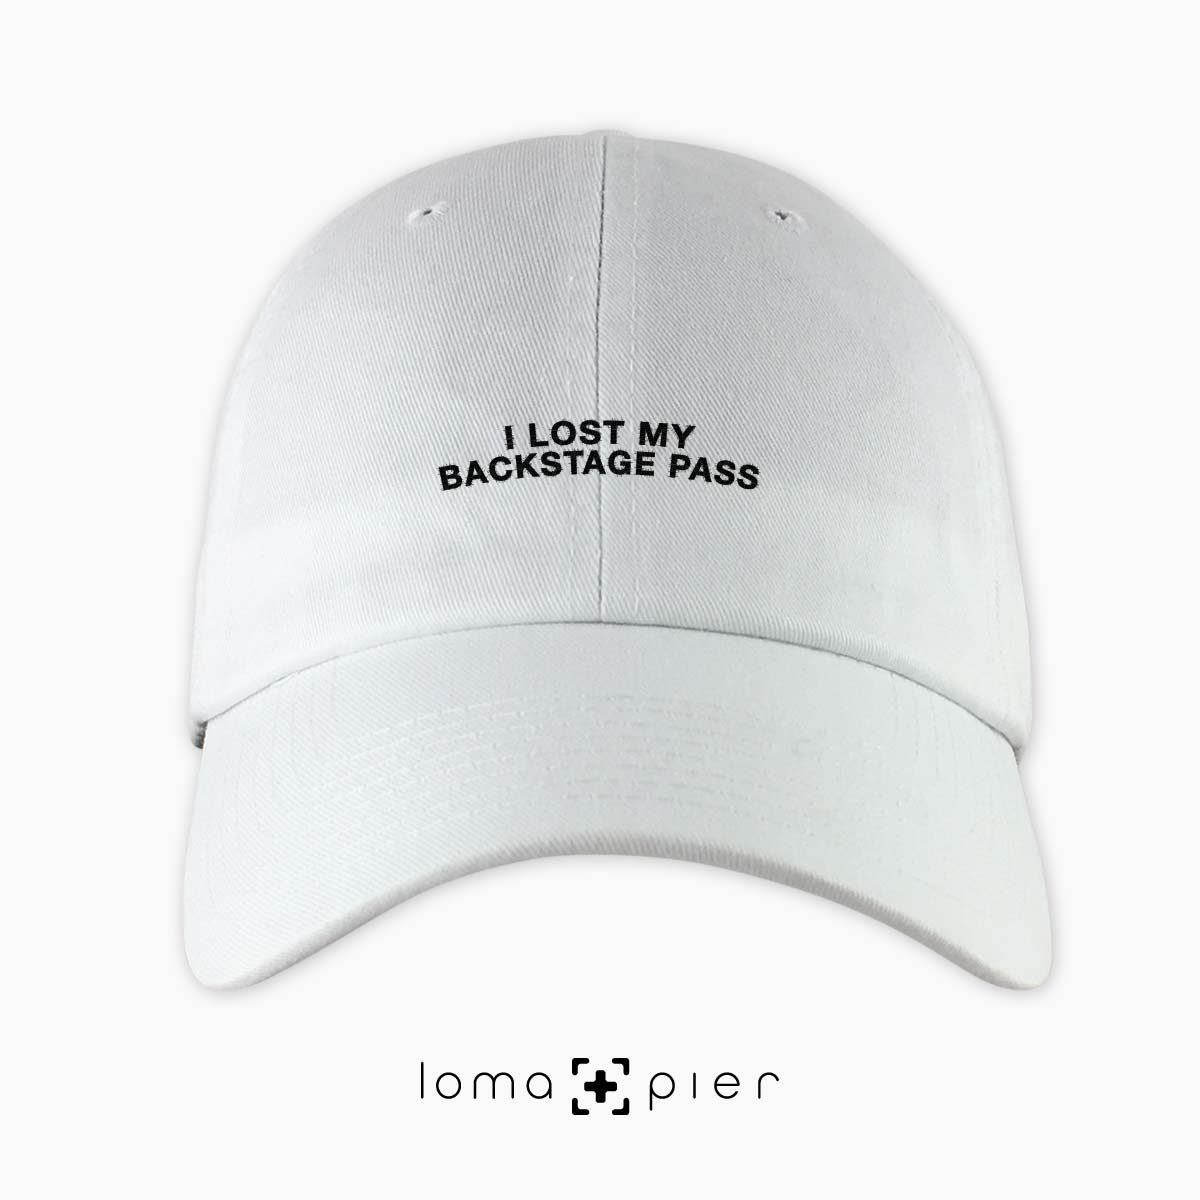 I LOST MY BACKSTAGE PASS music festival dad hat in white by loma+pier hat store made in the USA